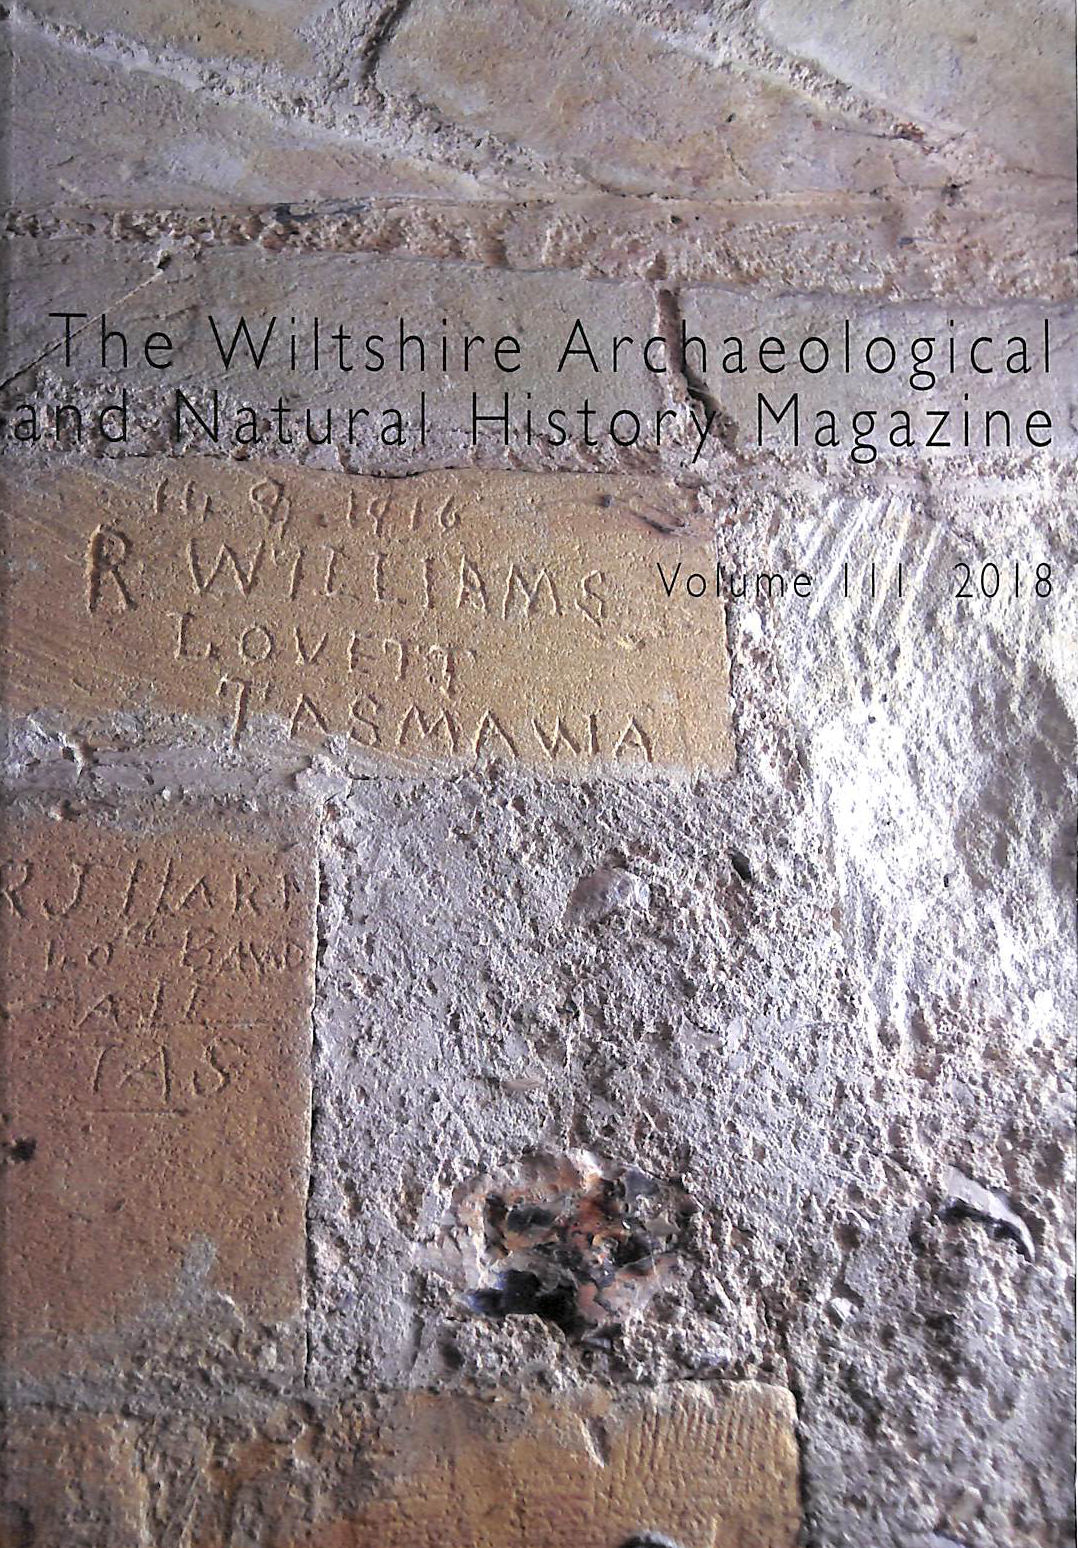 Image for Wiltshire Archaeological and natural History Magazine Volume 111 2018